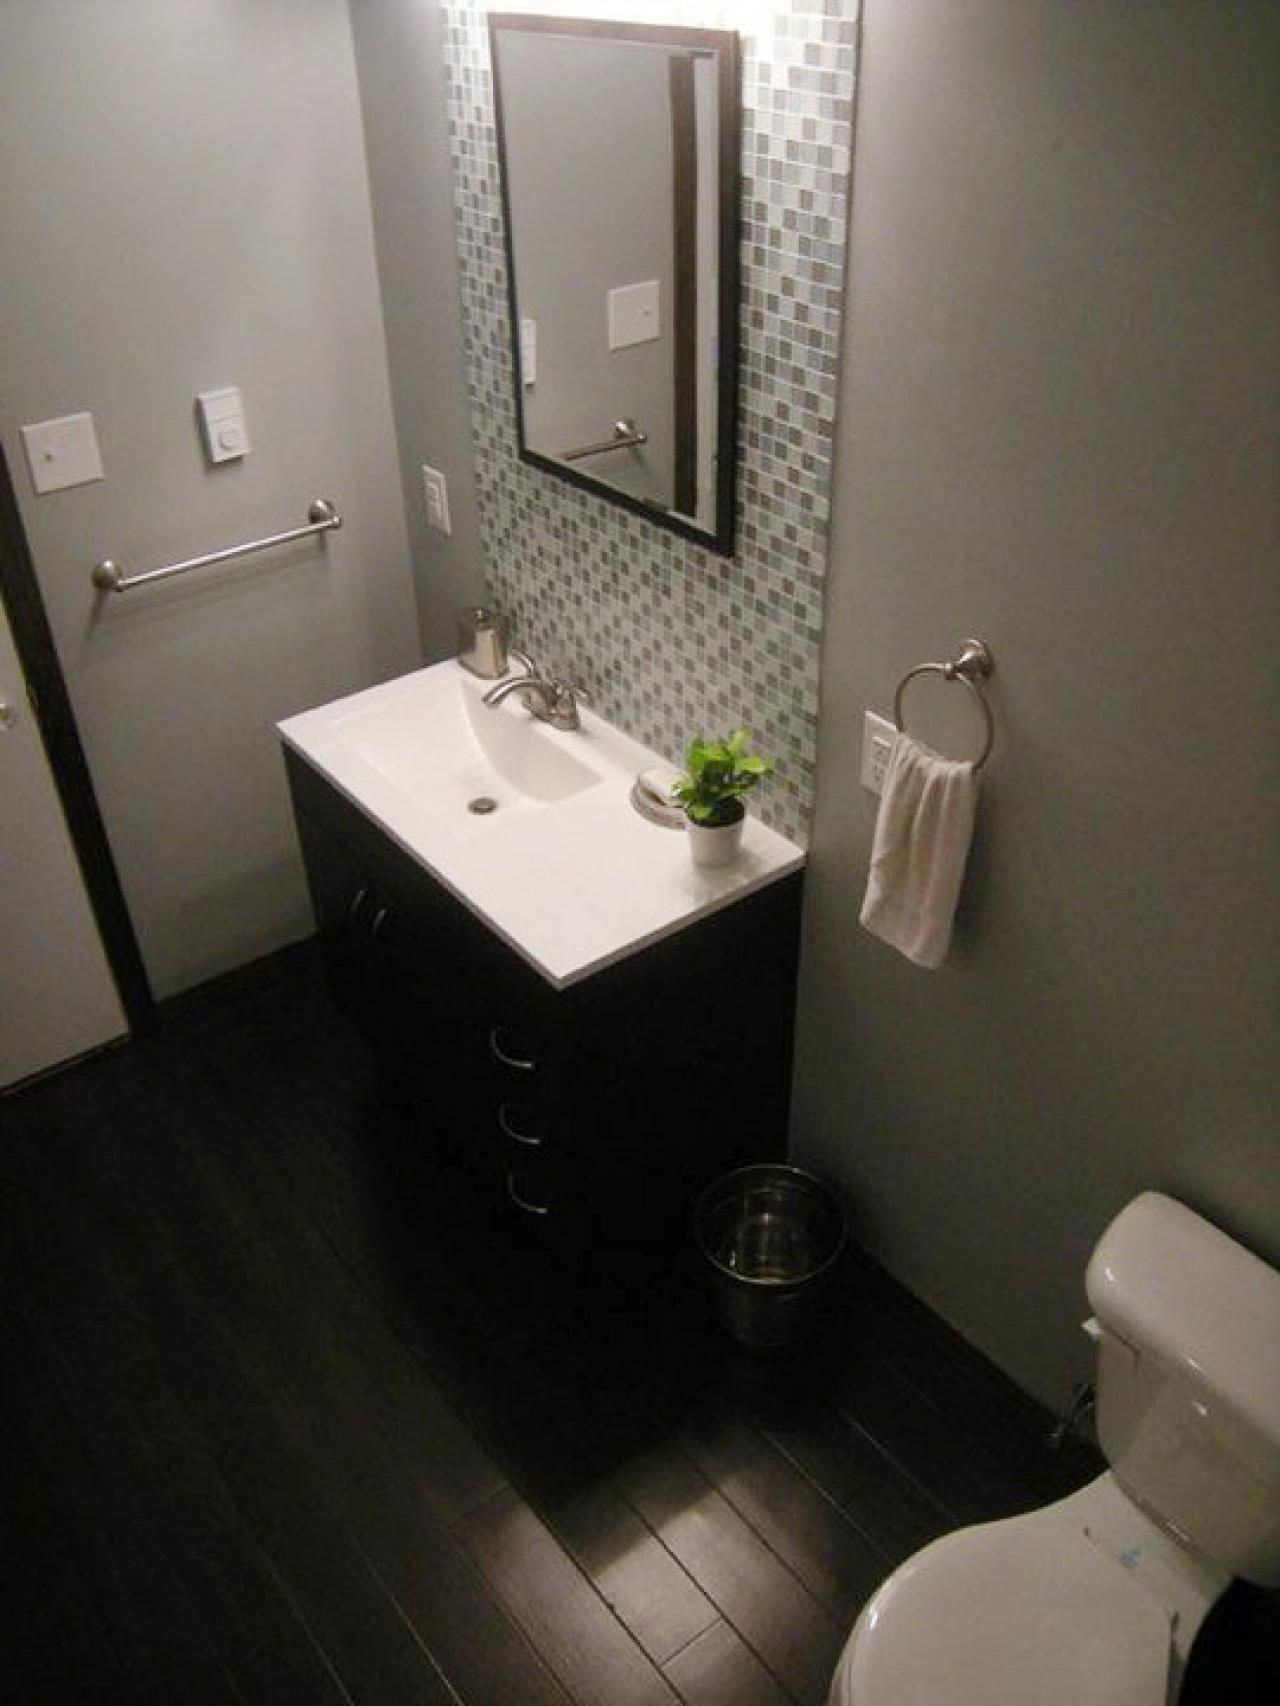 Budgeting For A Bathroom Remodel Pinterest Budget Bathroom - Small bathroom renovations on a budget